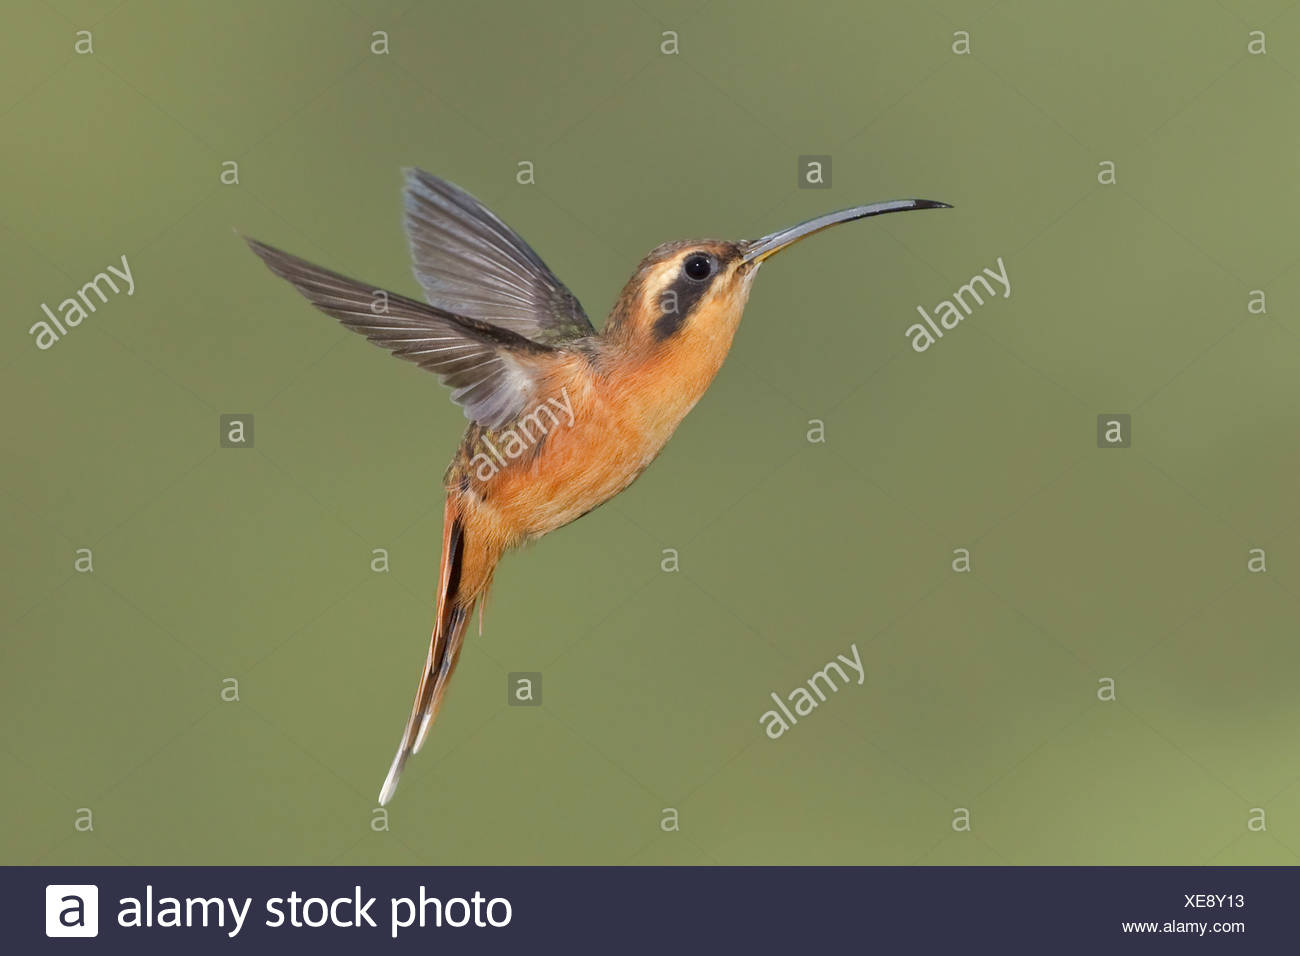 Gray-chinned Hermit (Phaethornis griseogularis) feeding at a flower while flying at the Wildsumaco reserve in eastern Ecuador. - Stock Image